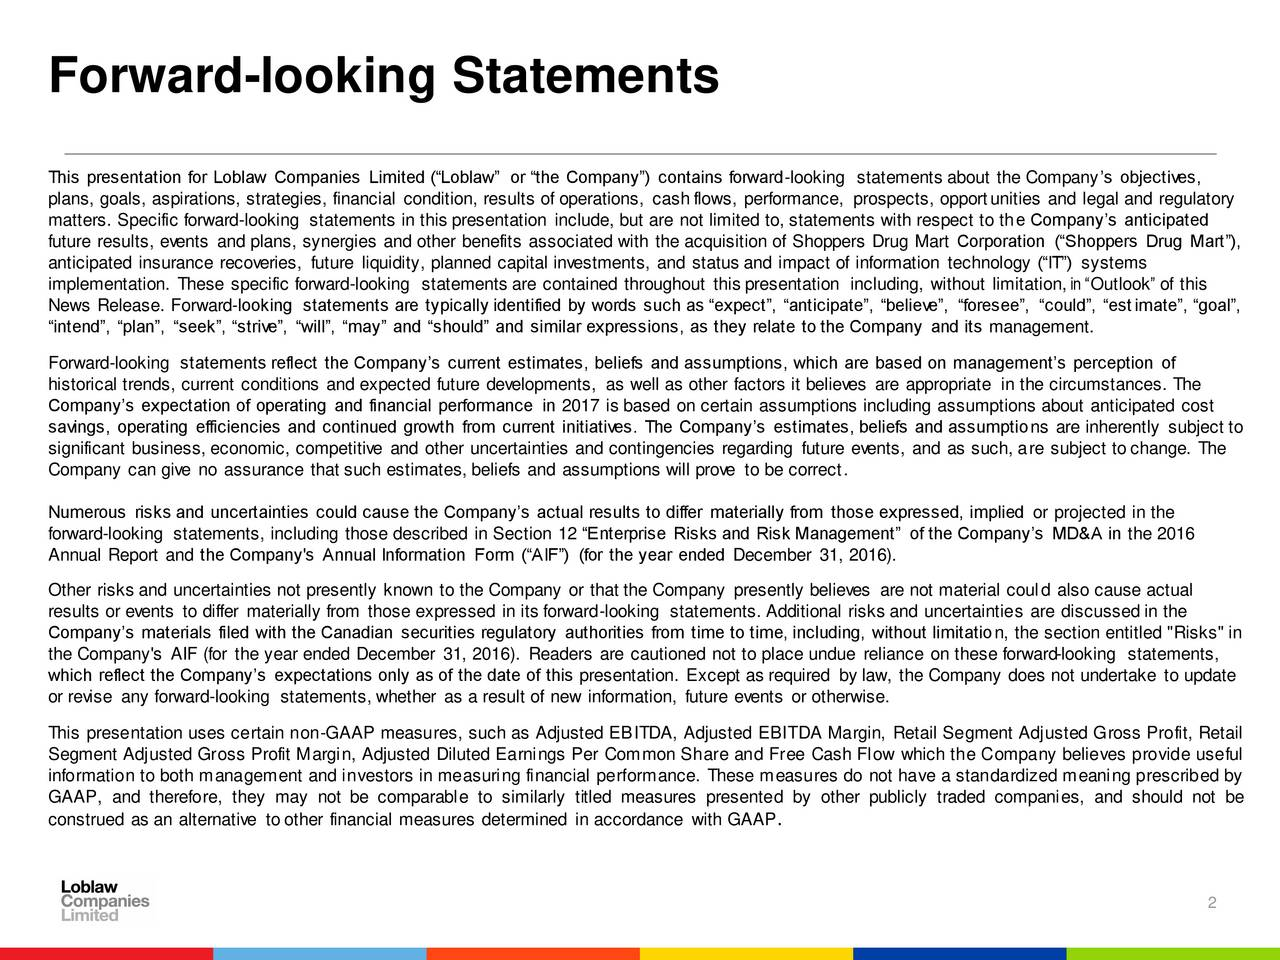 "This presentation for Loblaw Companies Limited (Loblaw or the Company) contains forward-looking statements about the Companys objectives, plans, goals, aspirations, strategies, financial condition, results of operations, cash flows, performance, prospects, opportunities and legal and regulatory matters. Specific forward-looking statements in this presentation include, but are not limited to, statements with respect to the Companys anticipated future results, events and plans, synergies and other benefits associated with the acquisition of Shoppers Drug Mart Corporation (Shoppers Drug Mart), anticipated insurance recoveries, future liquidity, planned capital investments, and status and impact of information technology (IT) systems implementation. These specific forward-looking statements are contained throughout this presentation including, without limitation, in Outlook of this News Release. Forward-looking statements are typically identified by words such as expect, anticipate, believe, foresee, could, estimate, goal, intend, plan, seek, strive, will, may and should and similar expressions, as they relate to the Company and its management. Forward-looking statements reflect the Companys current estimates, beliefs and assumptions, which are based on managements perception of historical trends, current conditions and expected future developments, as well as other factors it believes are appropriate in the circumstances. The Companys expectation of operating and financial performance in 2017 is based on certain assumptions including assumptions about anticipated cost savings, operating efficiencies and continued growth from current initiatives. The Companys estimates, beliefs and assumptions are inherently subject to significant business, economic, competitive and other uncertainties and contingencies regarding future events, and as such, are subject to change. The Company can give no assurance that such estimates, beliefs and assumptions will prove to be correct. Numerous risks and uncertainties could cause the Companys actual results to differ materially from those expressed, implied or projected in the forward-looking statements, including those described in Section 12 Enterprise Risks and Risk Management of the Companys MD&A in the 2016 Annual Report and the Company's Annual Information Form (AIF) (for the year ended December 31, 2016). Other risks and uncertainties not presently known to the Company or that the Company presently believes are not material could also cause actual results or events to differ materially from those expressed in its forward-looking statements. Additional risks and uncertainties are discussed in the Companys materials filed with the Canadian securities regulatory authorities from time to time, including, without limitation, the section entitled ""Risks"" in the Company's AIF (for the year ended December 31, 2016). Readers are cautioned not to place undue reliance on these forward-looking statements, which reflect the Companys expectations only as of the date of this presentation. Except as required by law, the Company does not undertake to update or revise any forward-looking statements, whether as a result of new information, future events or otherwise. This presentation uses certain non-GAAP measures, such as Adjusted EBITDA, Adjusted EBITDA Margin, Retail Segment Adjusted Gross Profit, Retail Segment Adjusted Gross Profit Margin, Adjusted Diluted Earnings Per Common Share and Free Cash Flow which the Company believes provide useful information to both management and investors in measuring financial performance. These measures do not have a standardized meaning prescribed by GAAP, and therefore, they may not be comparable to similarly titled measures presented by other publicly traded companies, and should not be construed as an alternative to other financial measures determined in accordance with GAAP. 2"